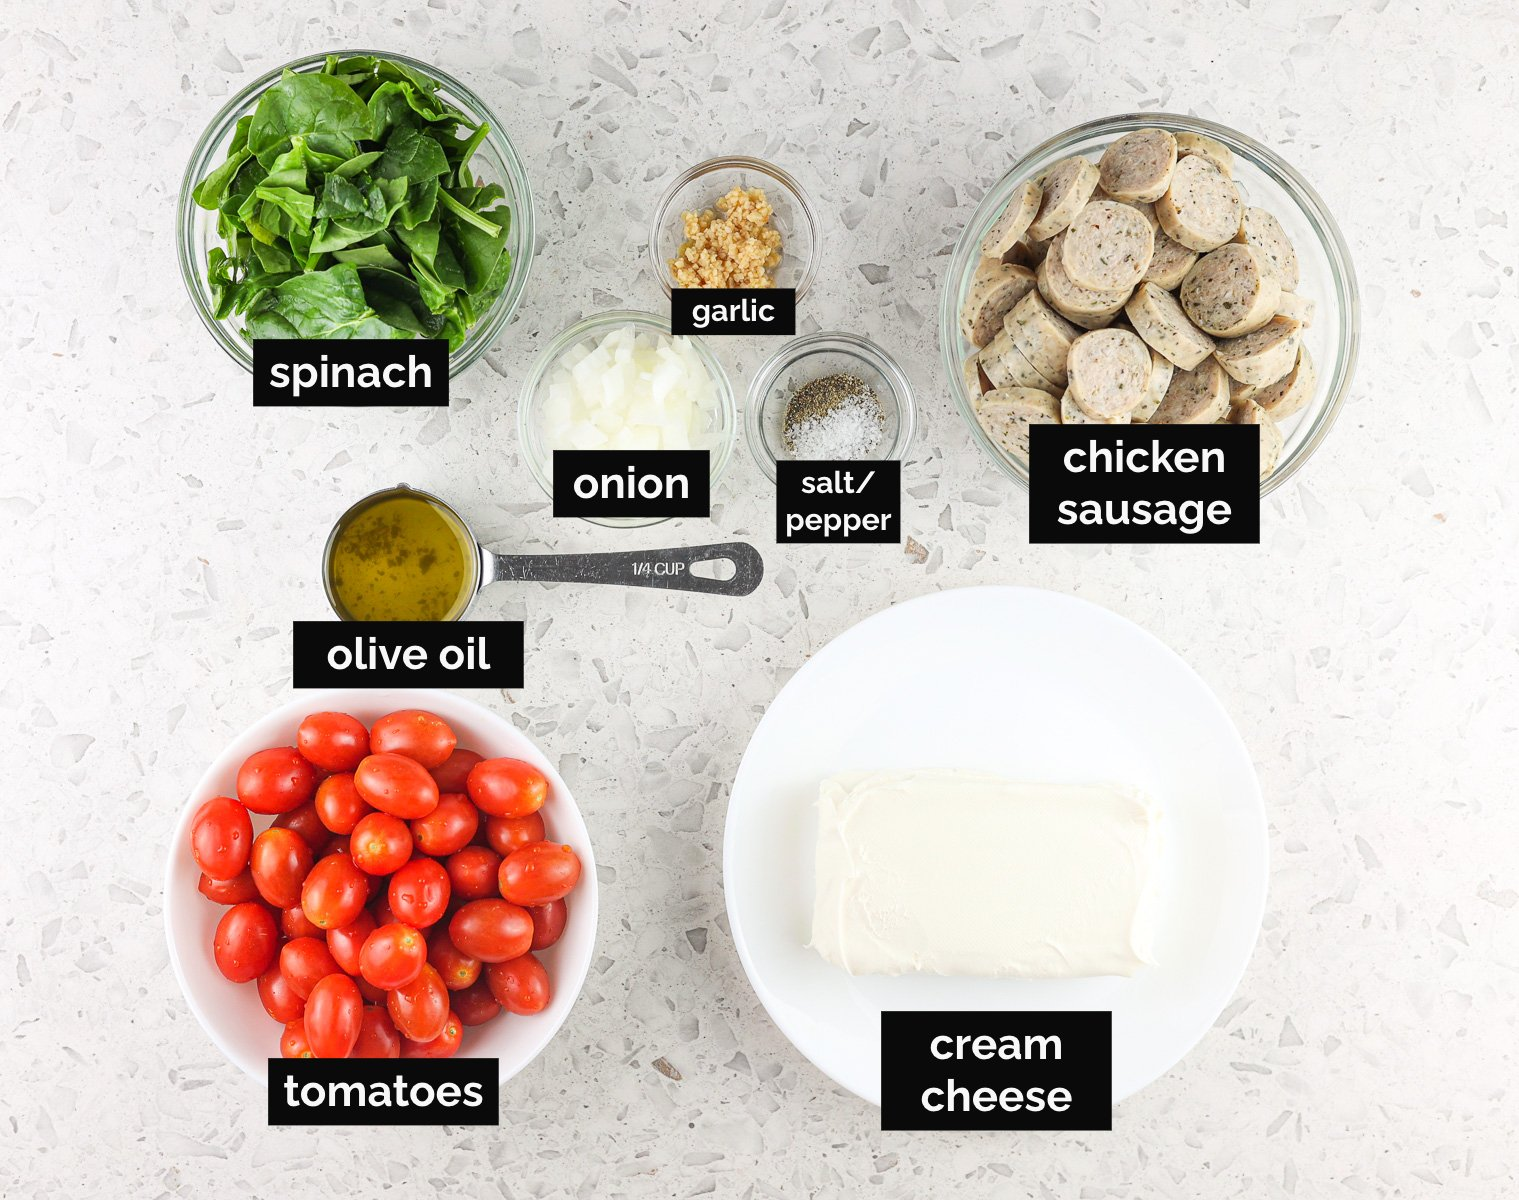 White backdrop with ingredient bowls containing spinach, sausage, spices, and cheese to make casserole with black labels.